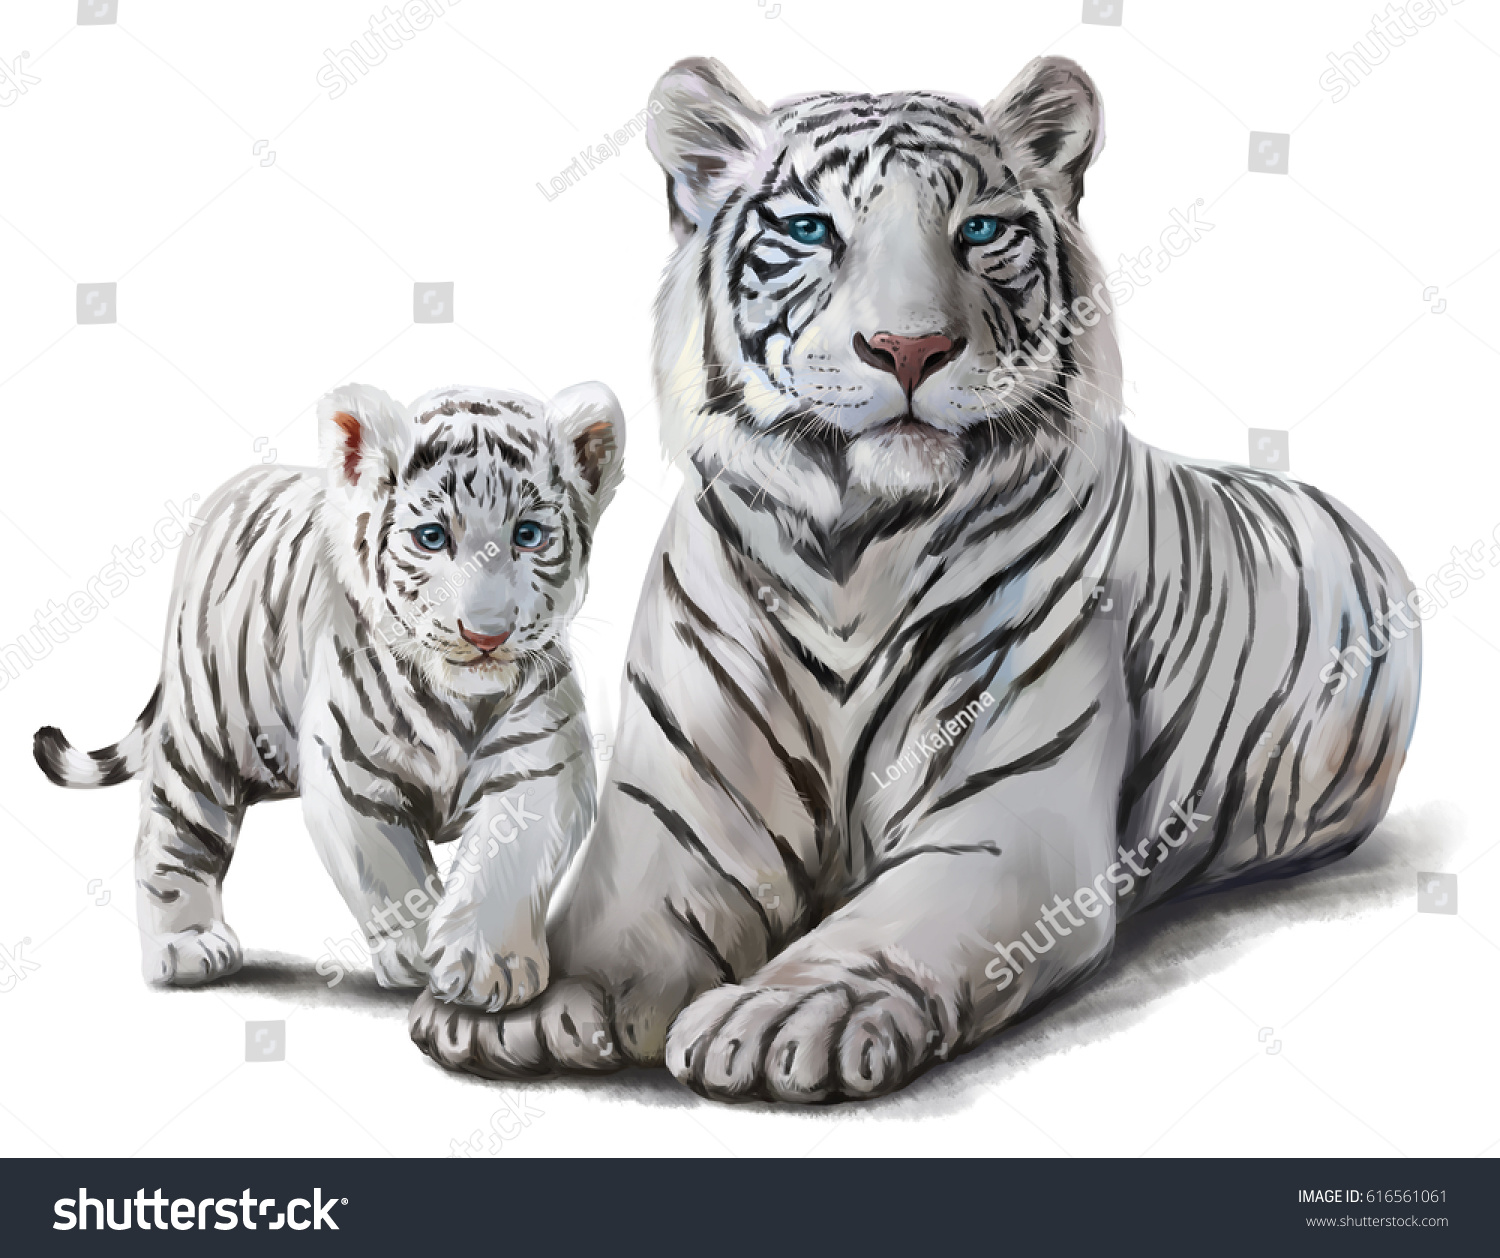 White Tigers Watercolor Painting Stock Illustration